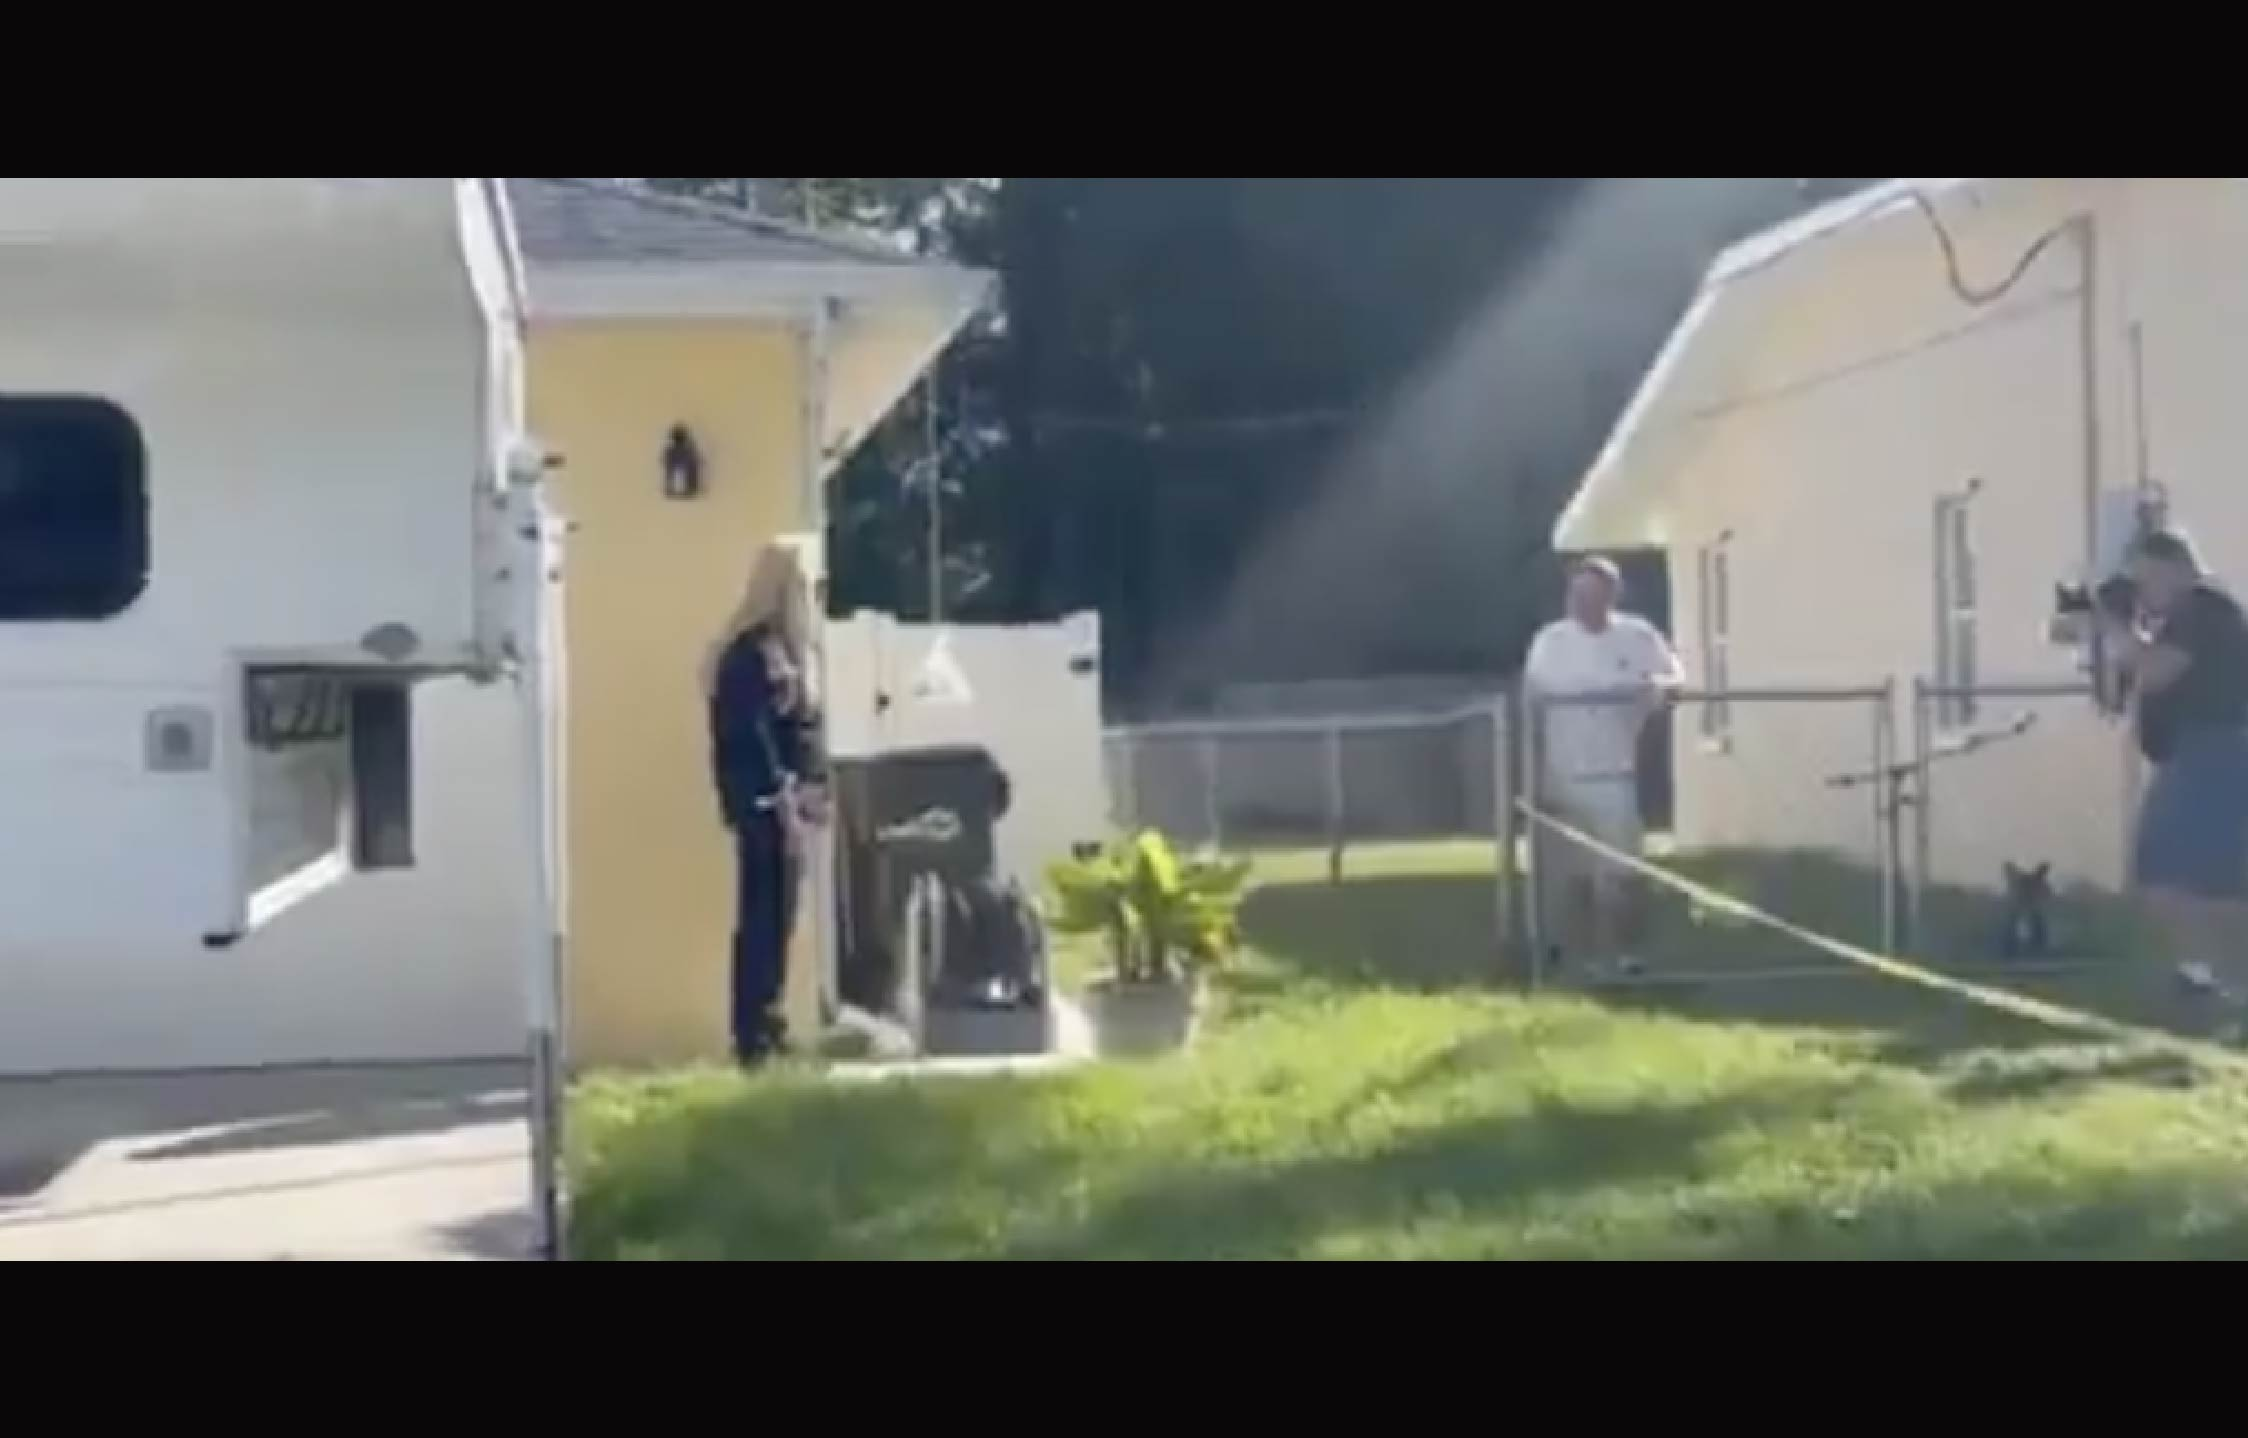 [VIDEO] Dog The Bounty Hunter is Now Looking For Brian Laundrie, and He's Starting Right At His Front Door